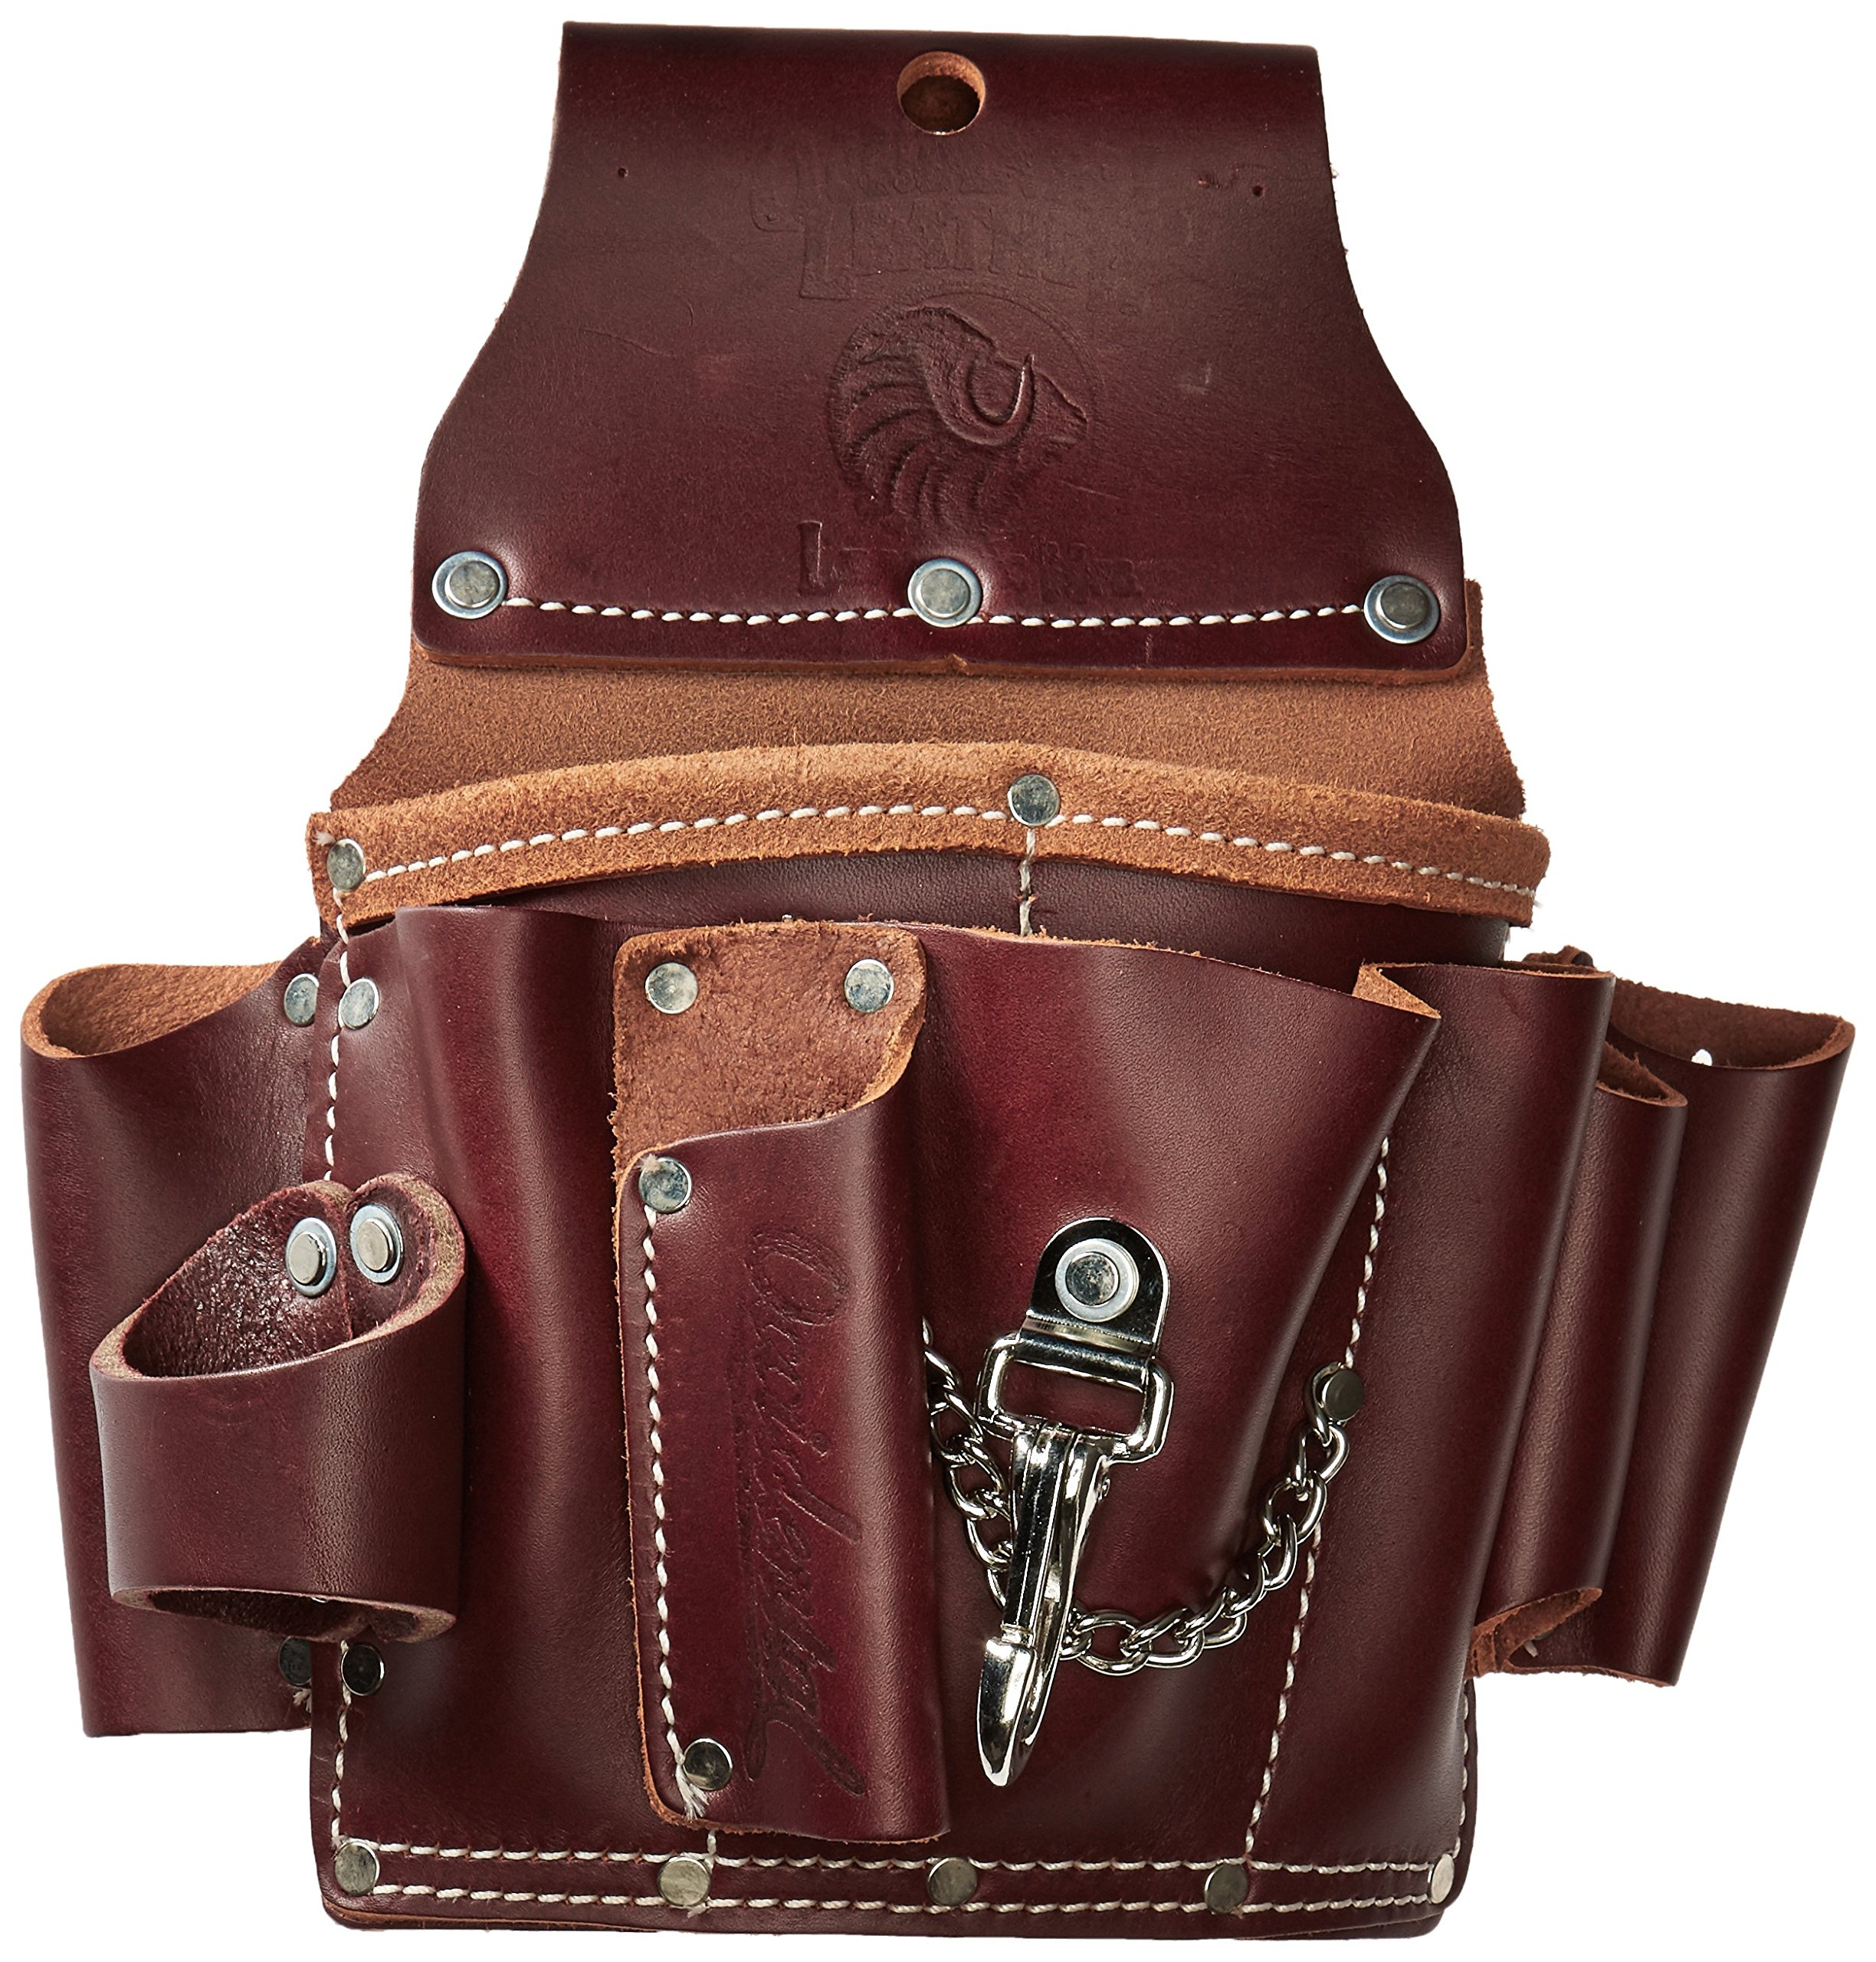 Occidental Leather 5500 Electrician's Tool Pouch by Occidental Leather (Image #1)